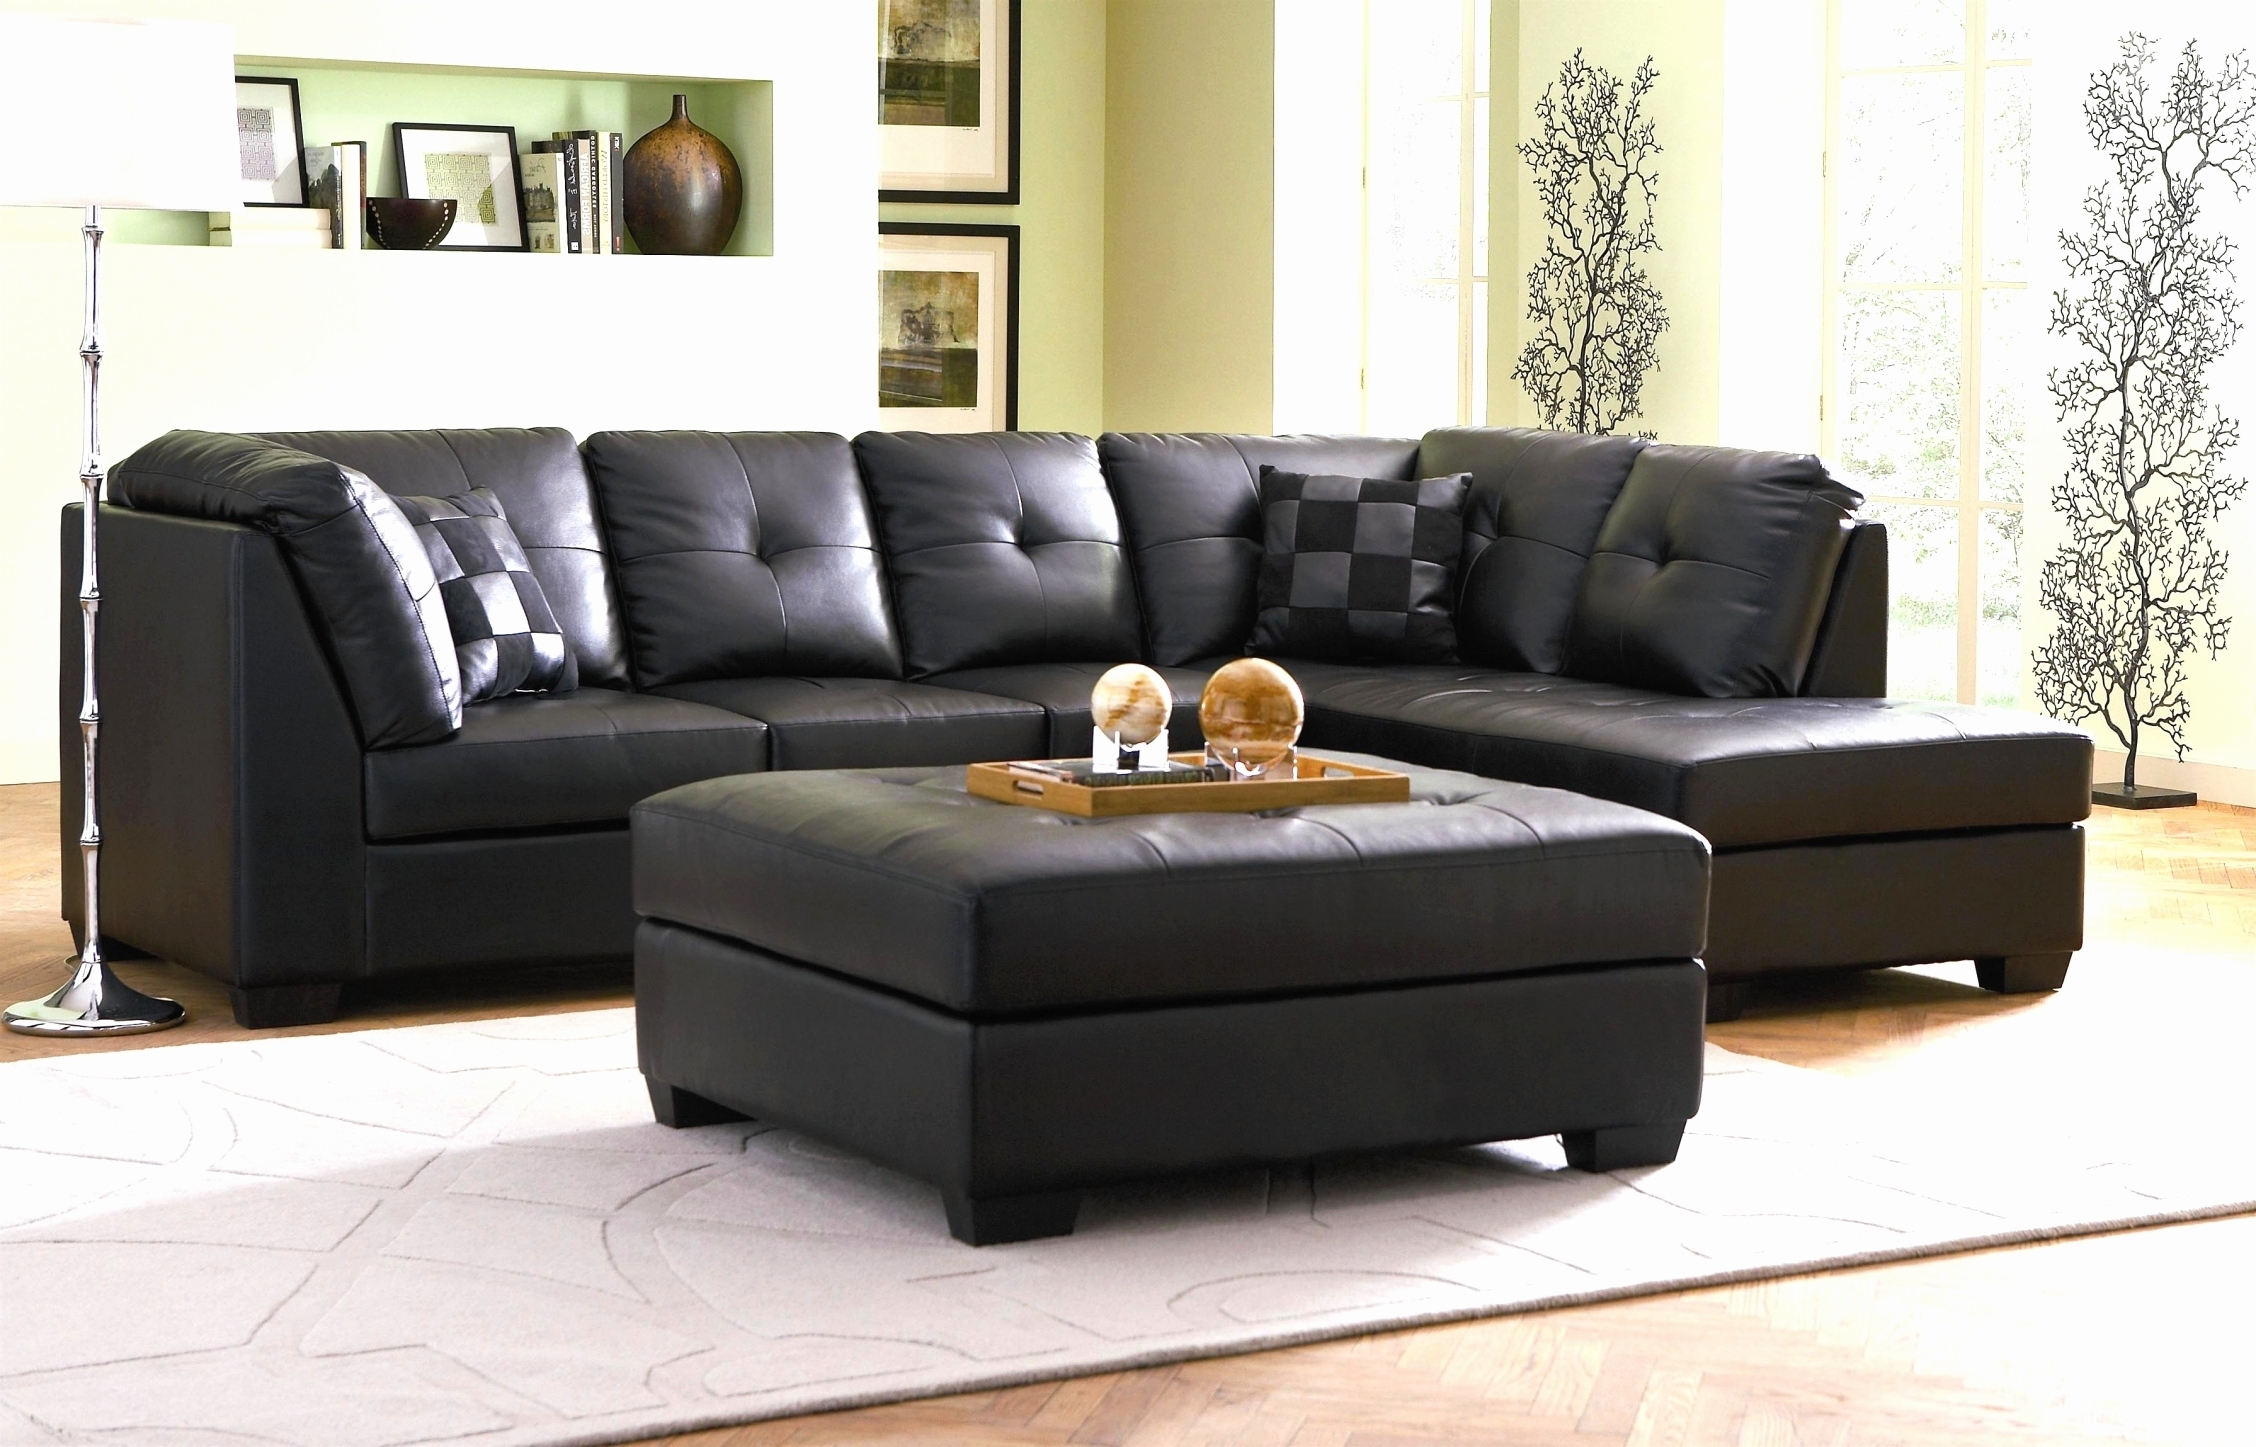 Latest 32 Lovely Sectional Sofas Clearance Photos – Sectional Sofa Design With Regard To Des Moines Ia Sectional Sofas (View 12 of 20)